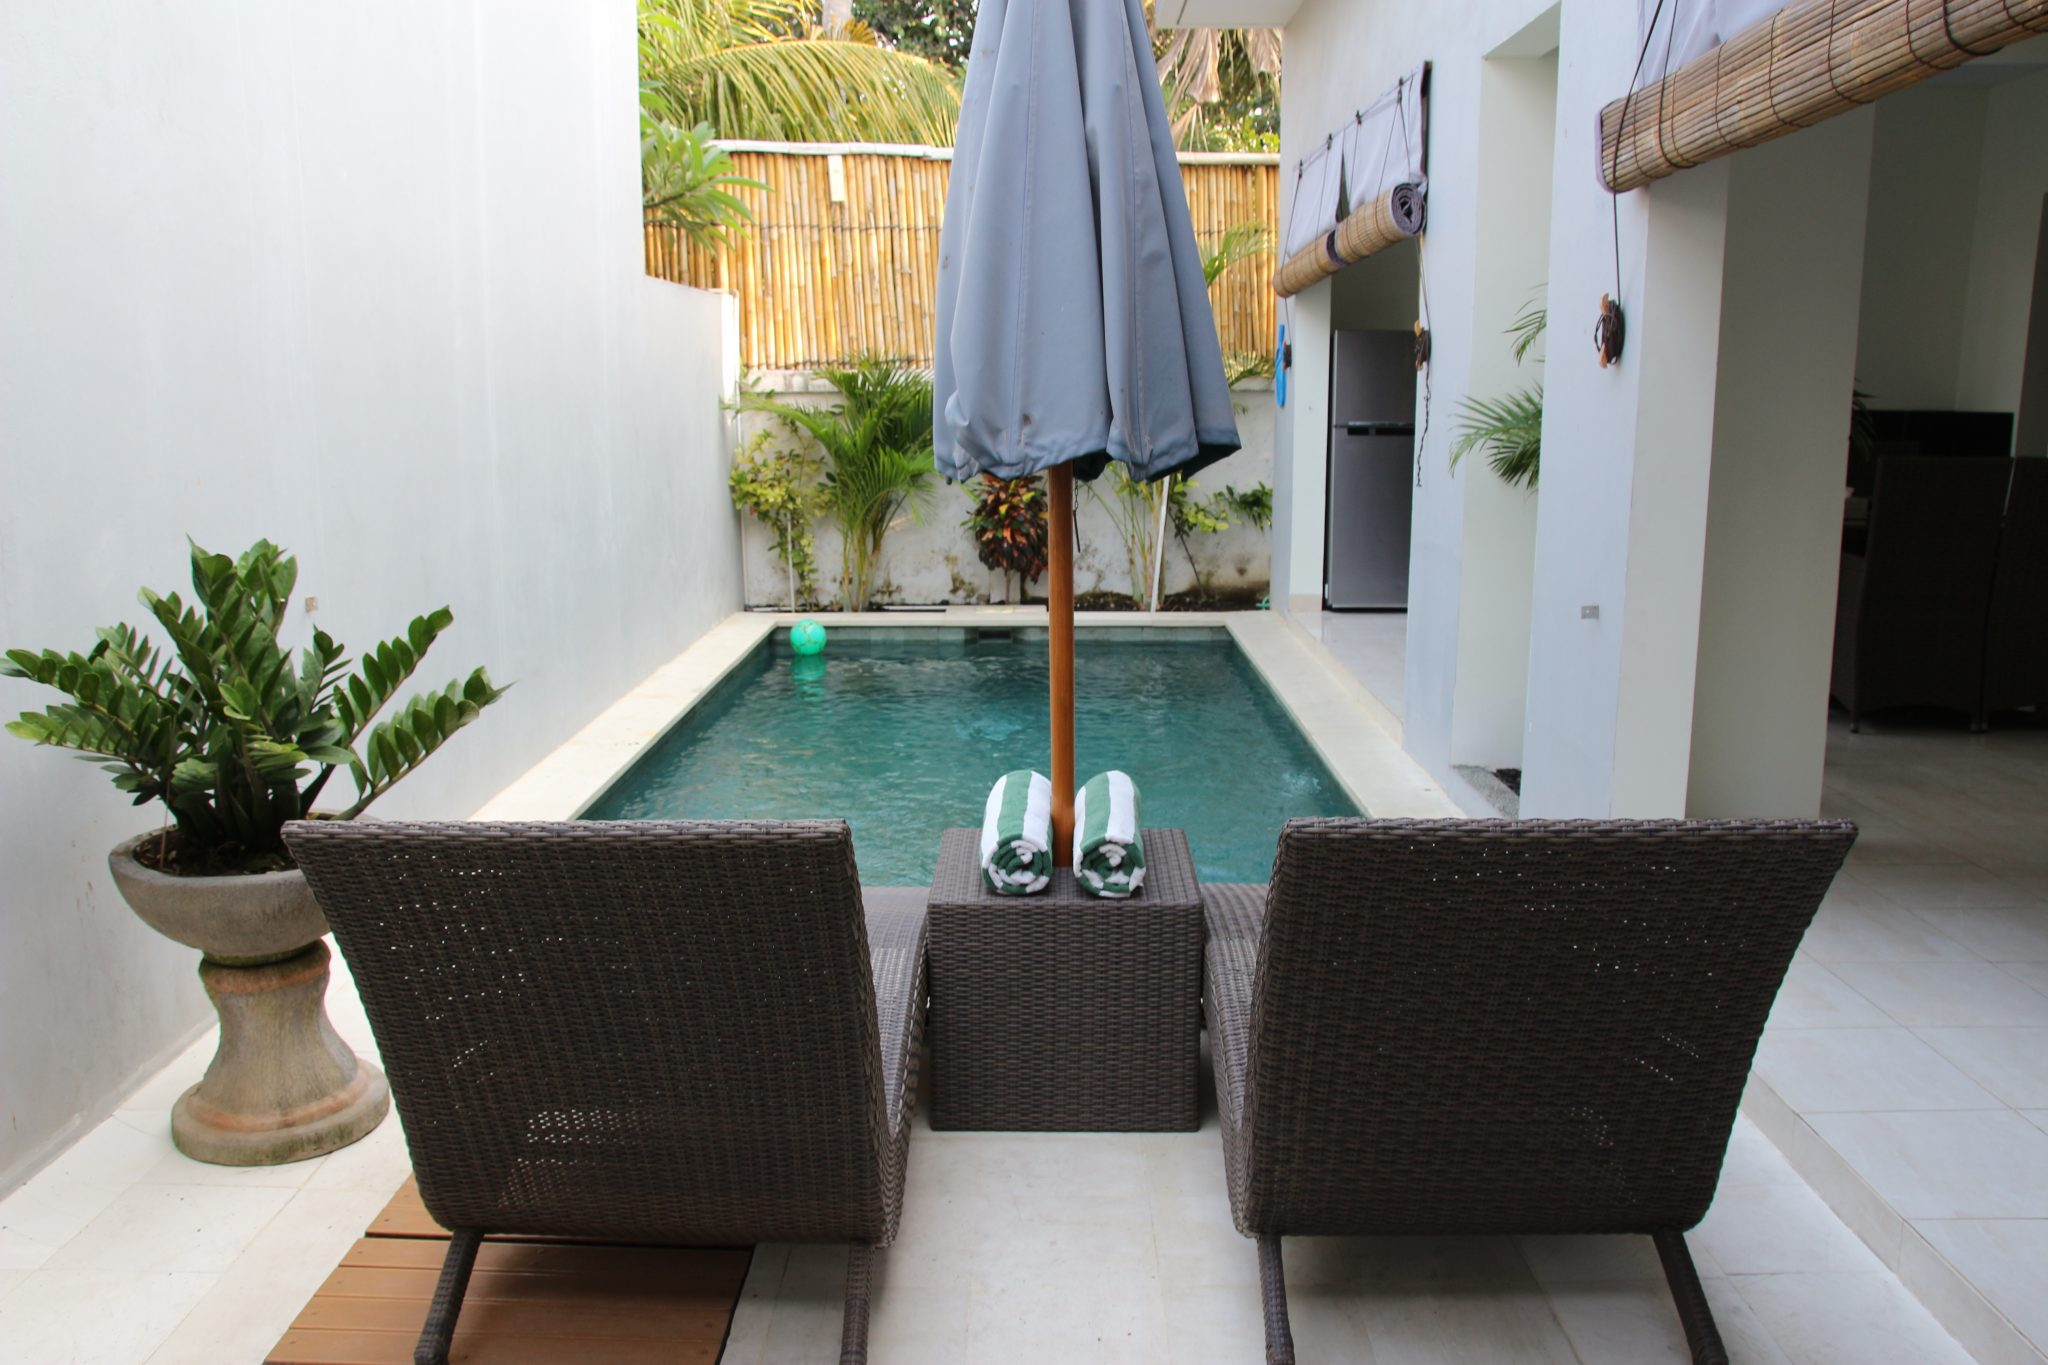 Swimming Pool at Bahagia Villas, Sanur, Bali